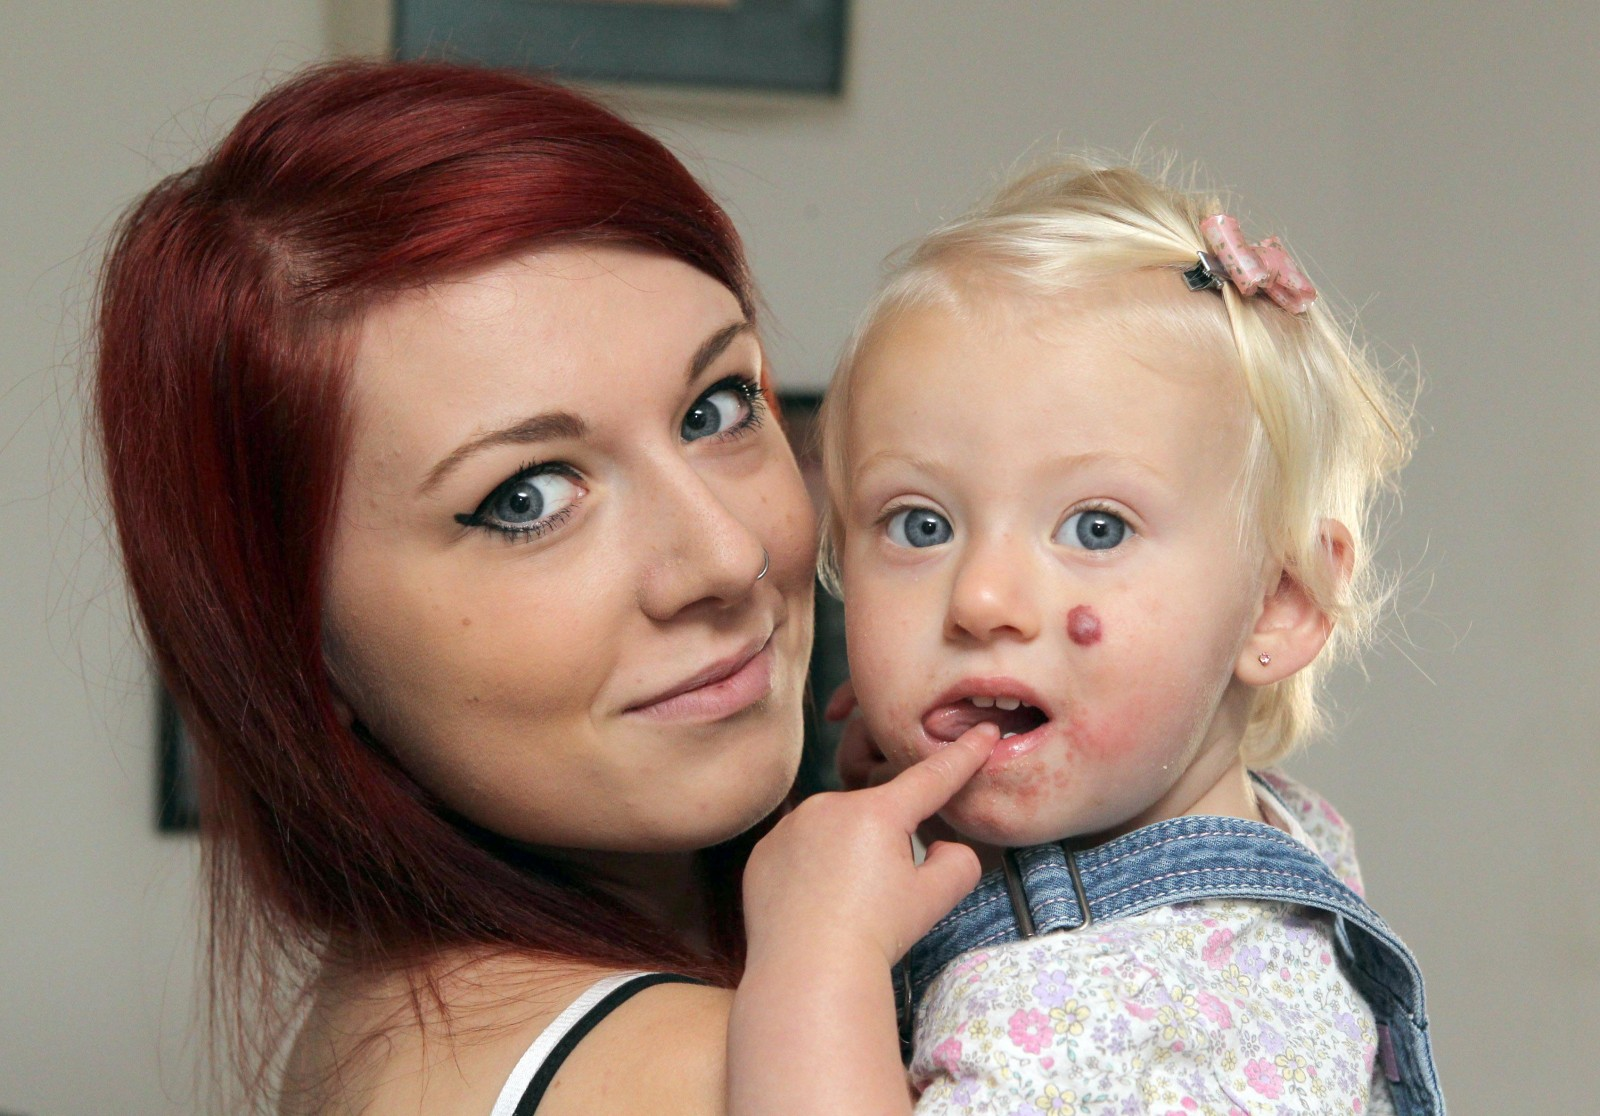 'How could they airbrush my perfect daughter?' Mum's fury at photography firm